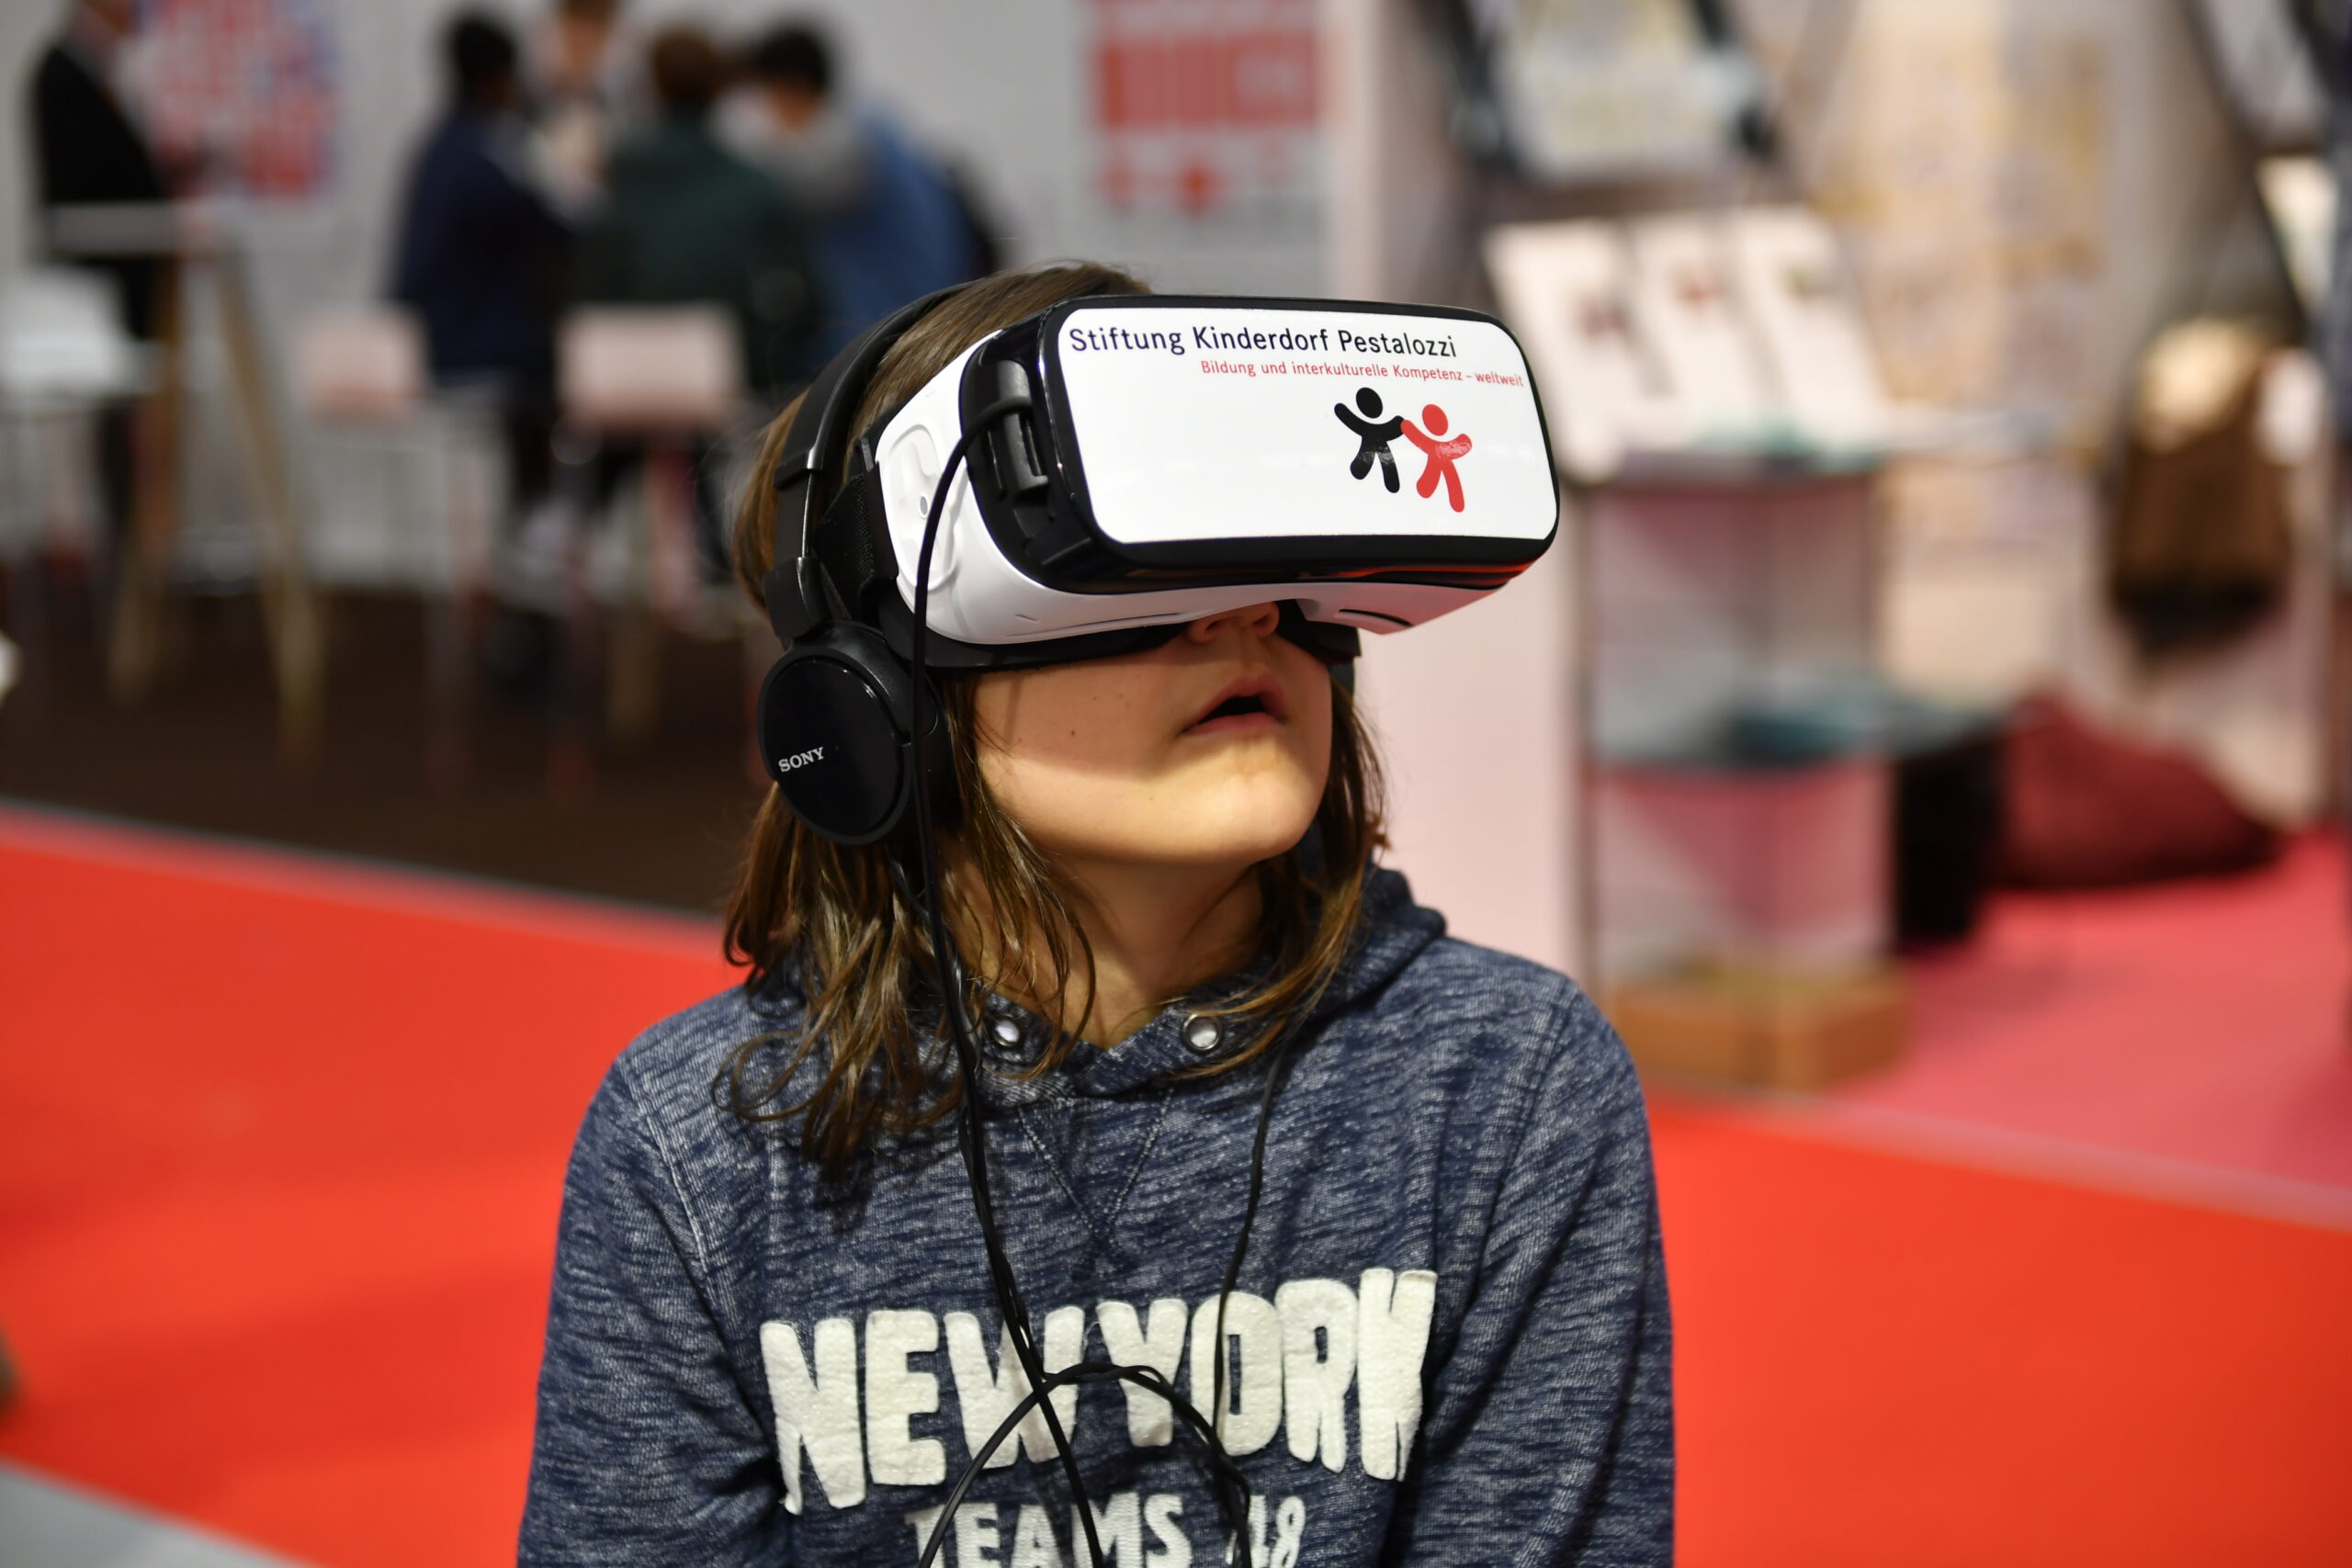 student testing Augmented Reality; new skills, e-learning